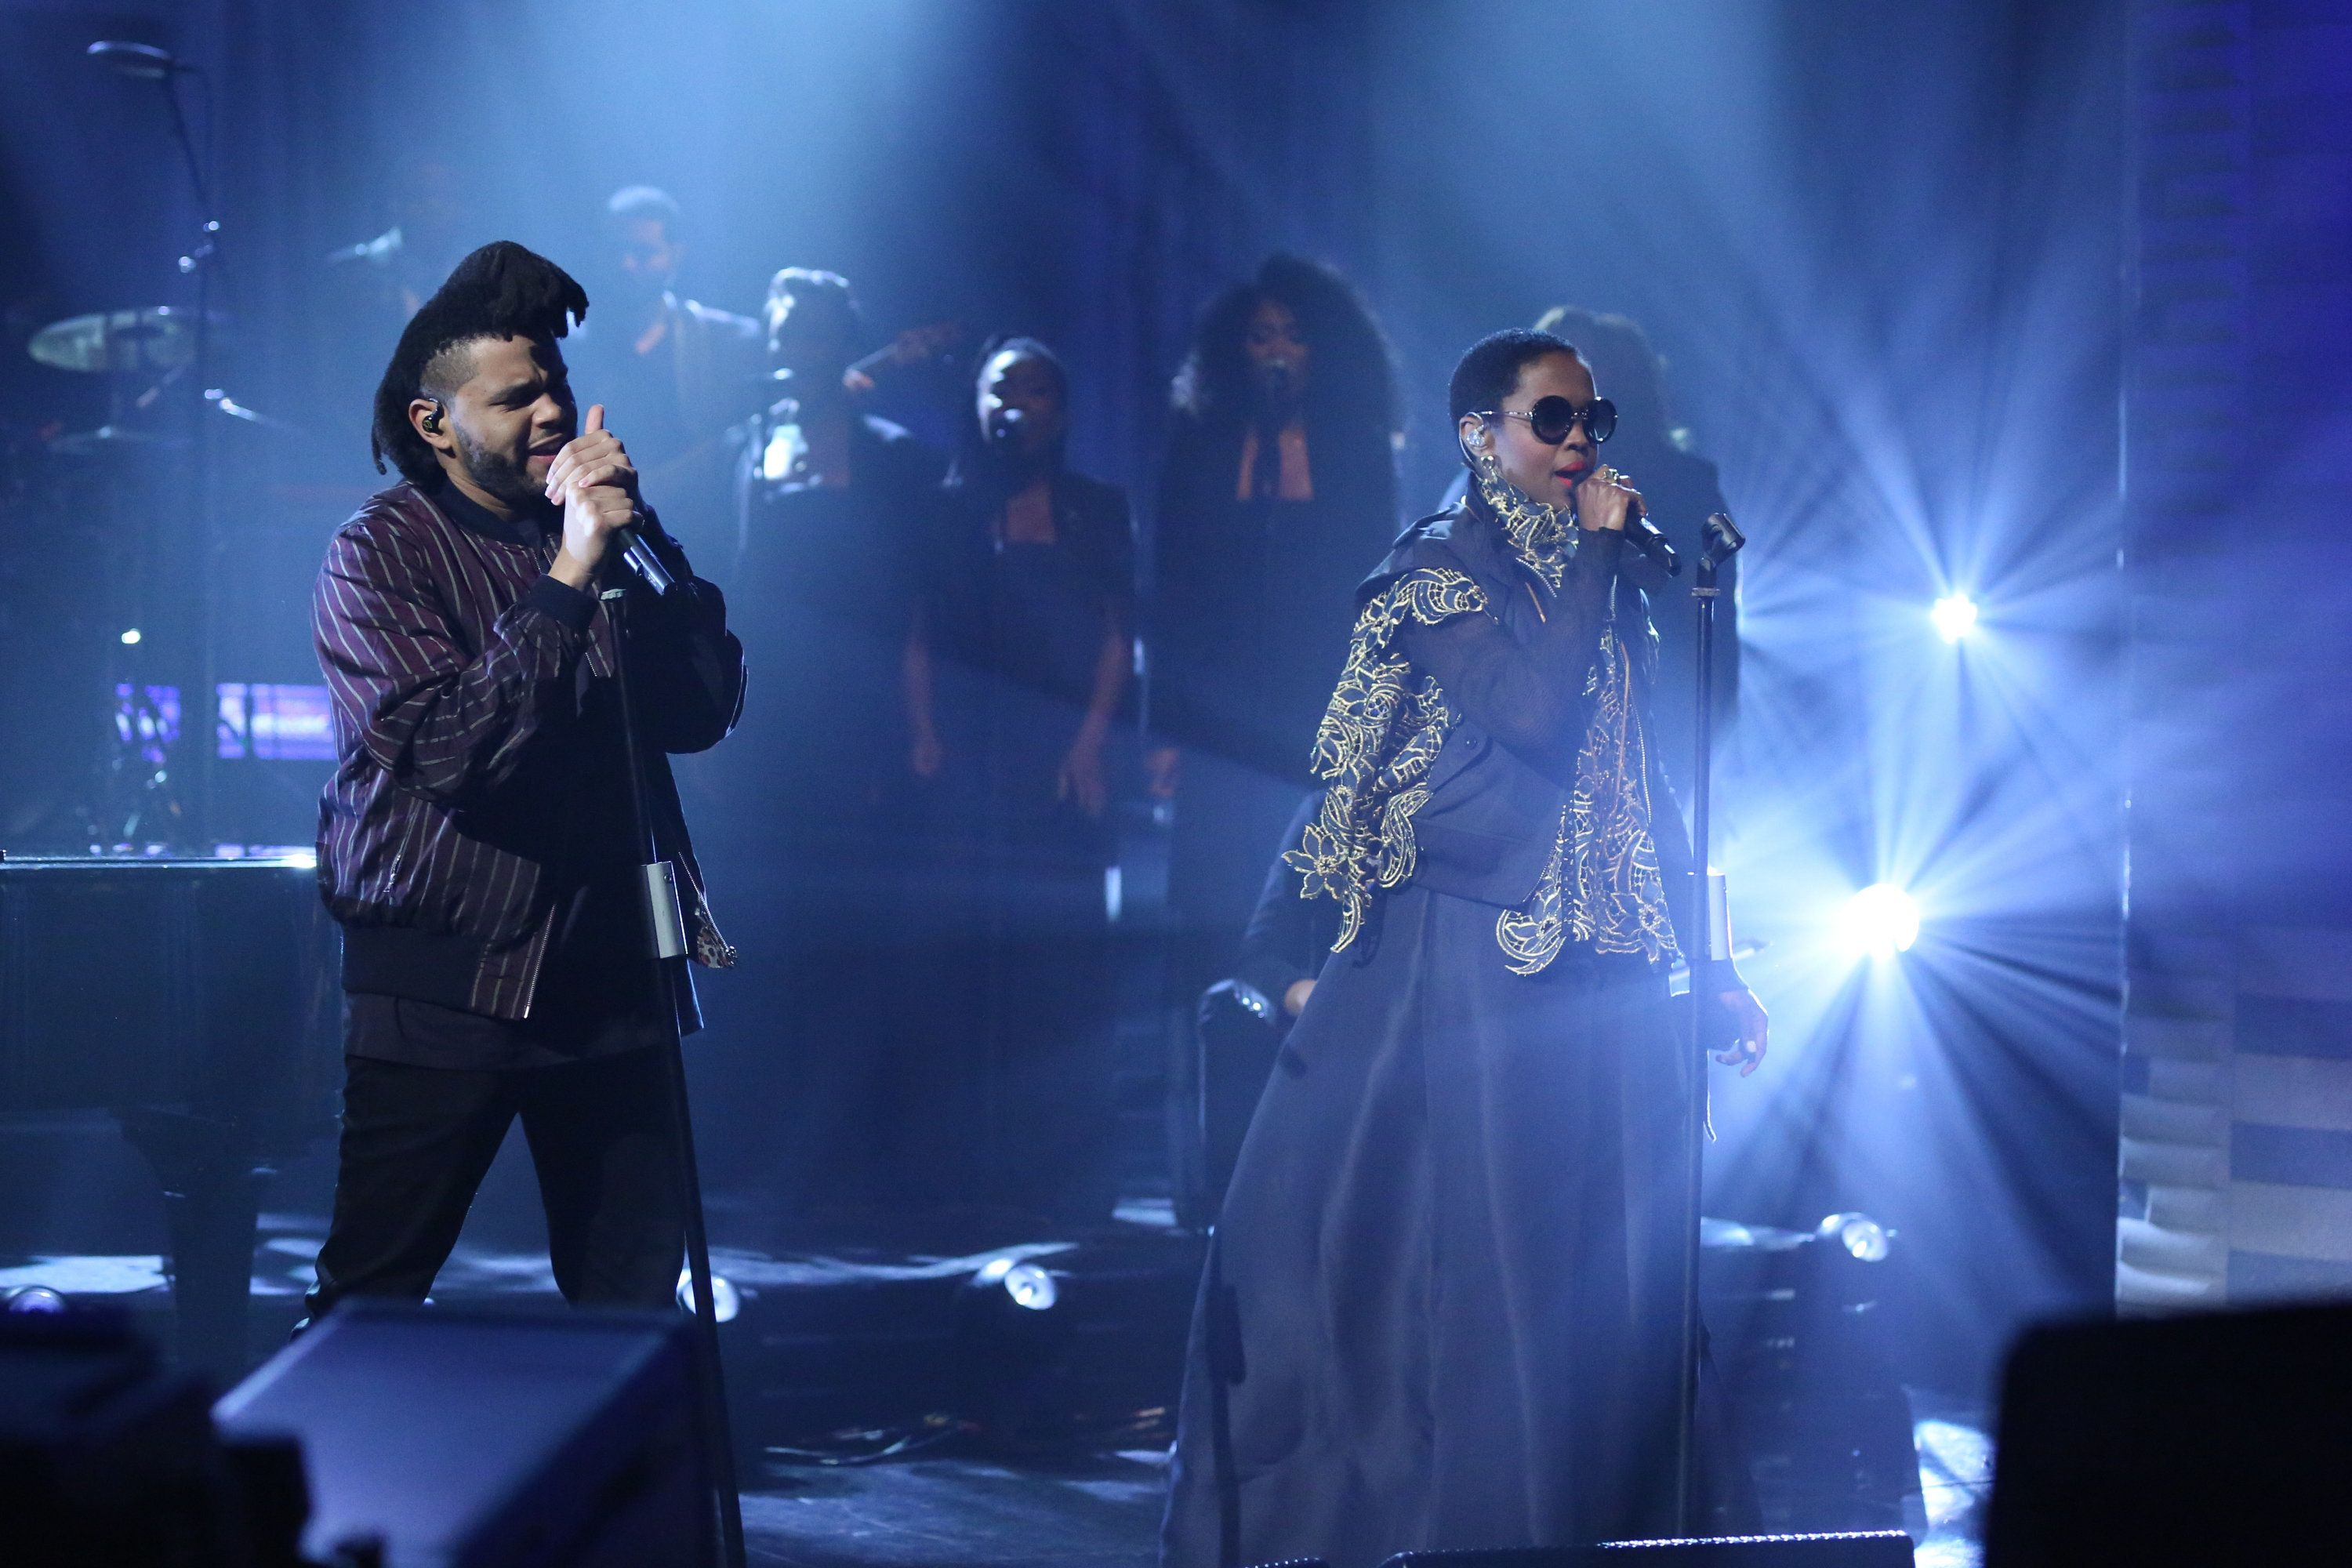 THE TONIGHT SHOW STARRING JIMMY FALLON -- Episode 0421 -- Pictured: (l-r) Musical guest The Weeknd performs with Ms. Lauryn Hill on February 19, 2016 -- (Photo by: Andrew Lipovsky/NBC/NBCU Photo Bank via Getty Images)